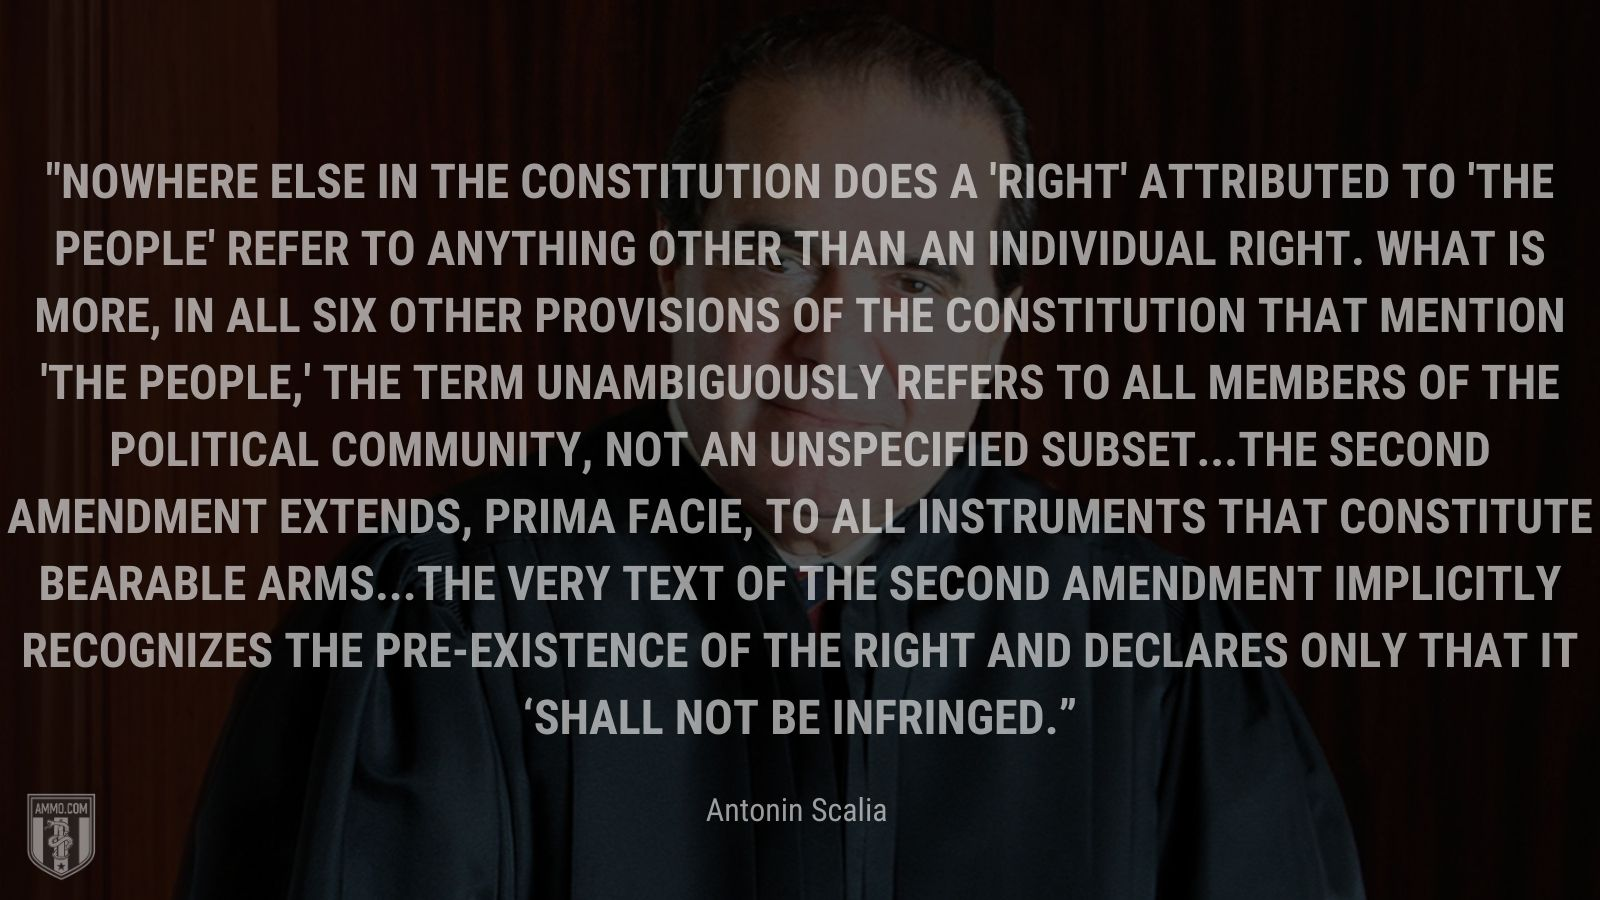 """""""Nowhere else in the Constitution does a 'right' attributed to 'the people' refer to anything other than an individual right. What is more, in all six other provisions of the Constitution that mention 'the people,' the term unambiguously refers to all members of the political community, not an unspecified subset...The Second Amendment extends, prima facie, to all instruments that constitute bearable arms...The very text of the Second Amendment implicitly recognizes the pre-existence of the right and declares only that it 'shall not be infringed."""" - Antonin Scalia"""